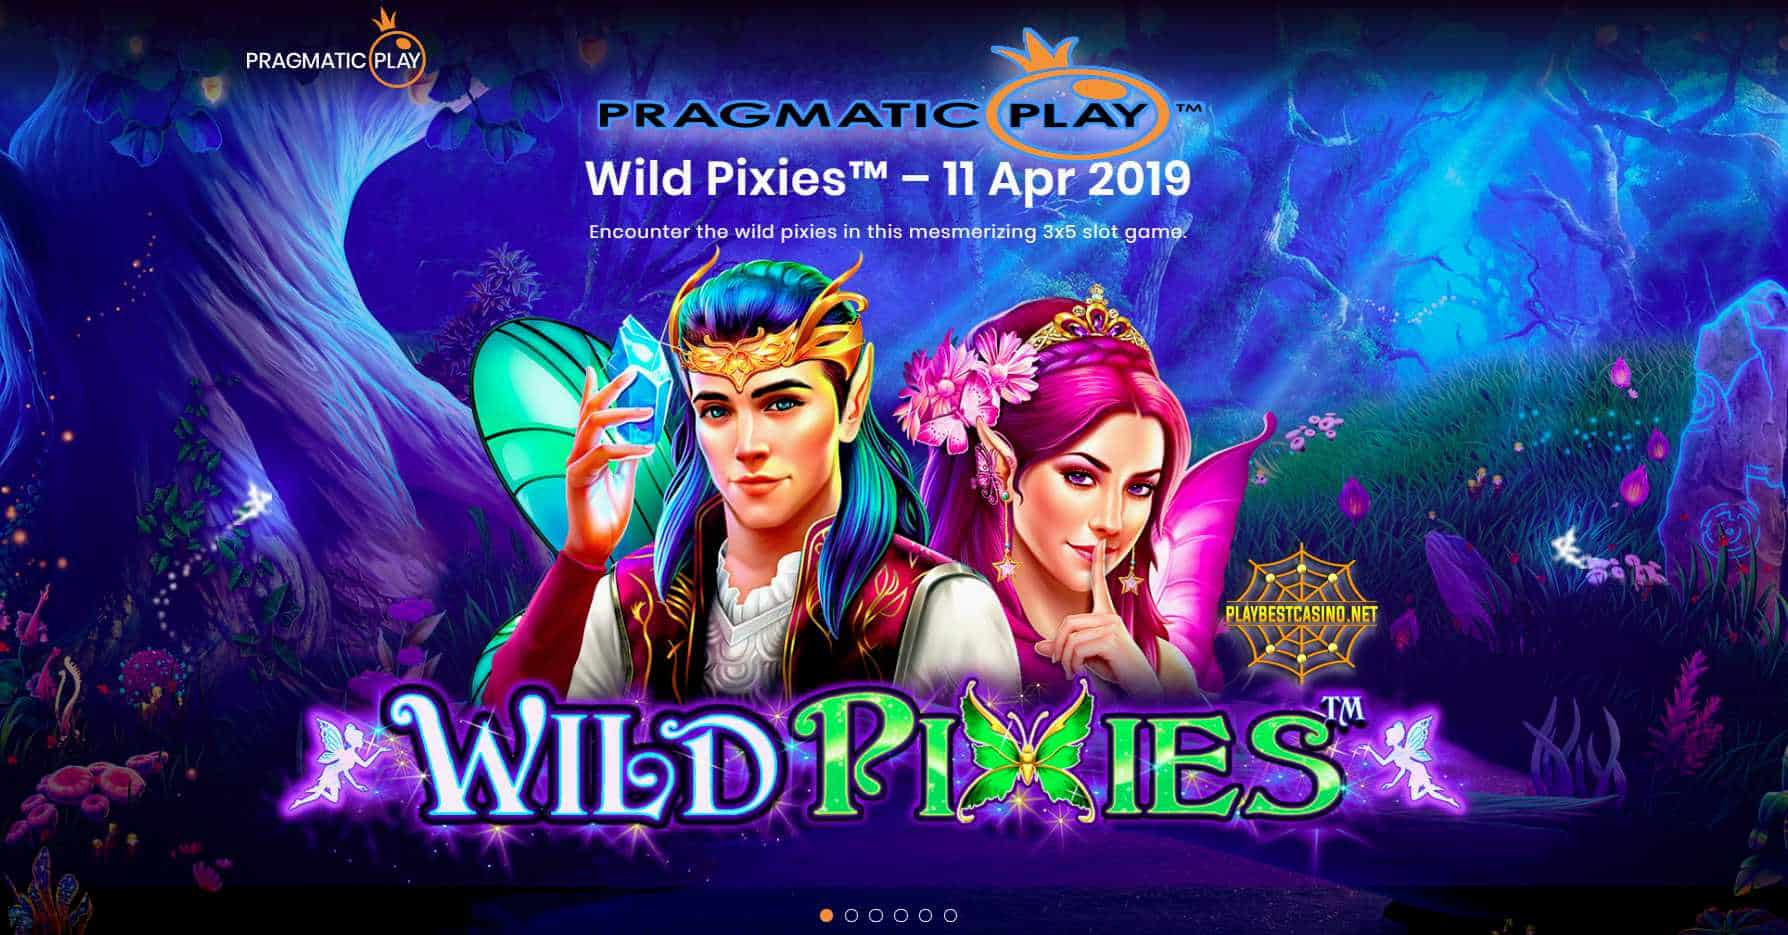 Wild pixies from Pragmatic Play can be seen in this image!